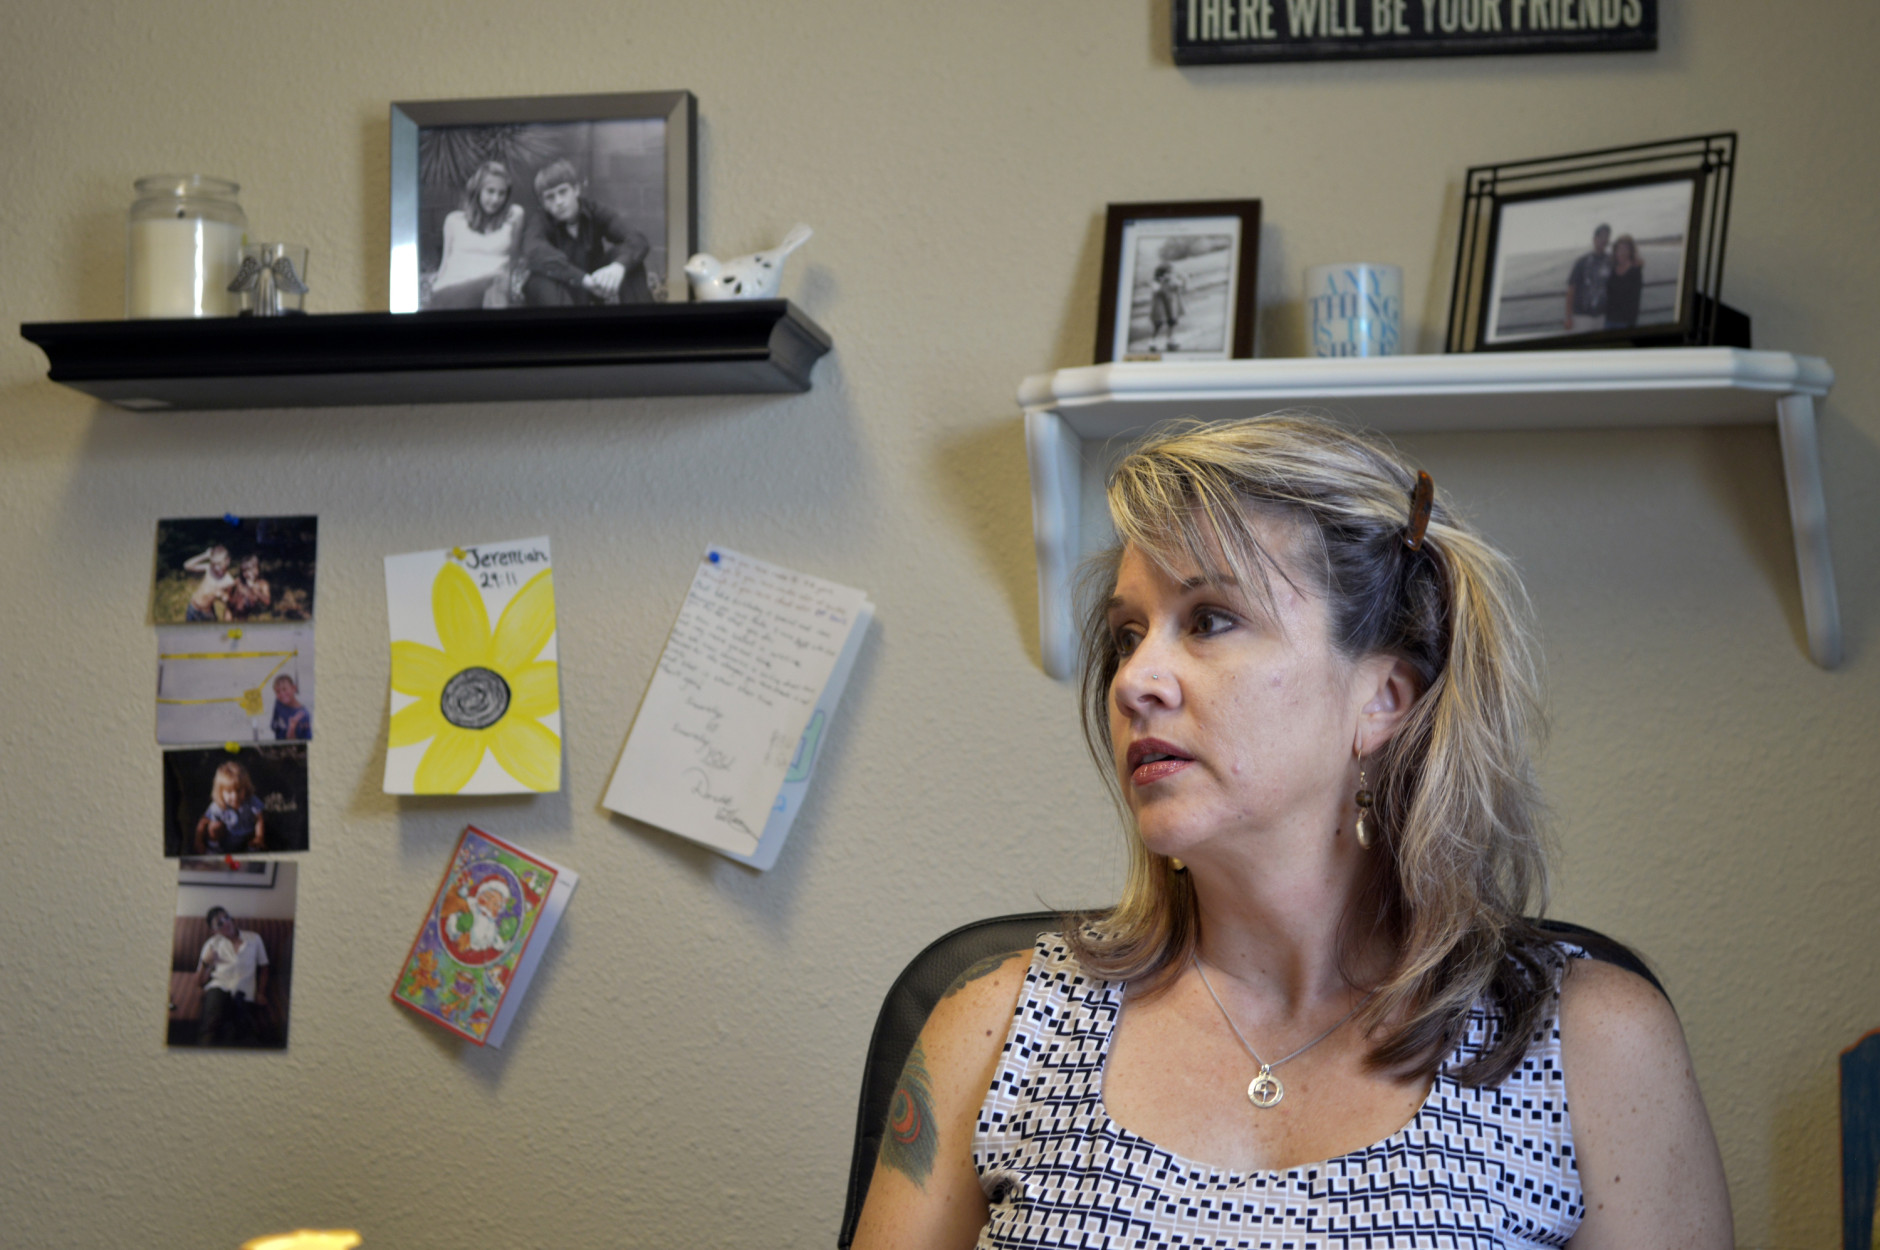 Jennifer Weiss-Burke, executive director of a youth recovery center in Albuquerque, N.M., speaks about her son on Aug. 9, 2016. She says Cameron's descent into drug addiction started with a painkiller prescription from his doctor and ended with a fatal heroin overdose nearly three years later. (AP Photo/Mary Hudetz)